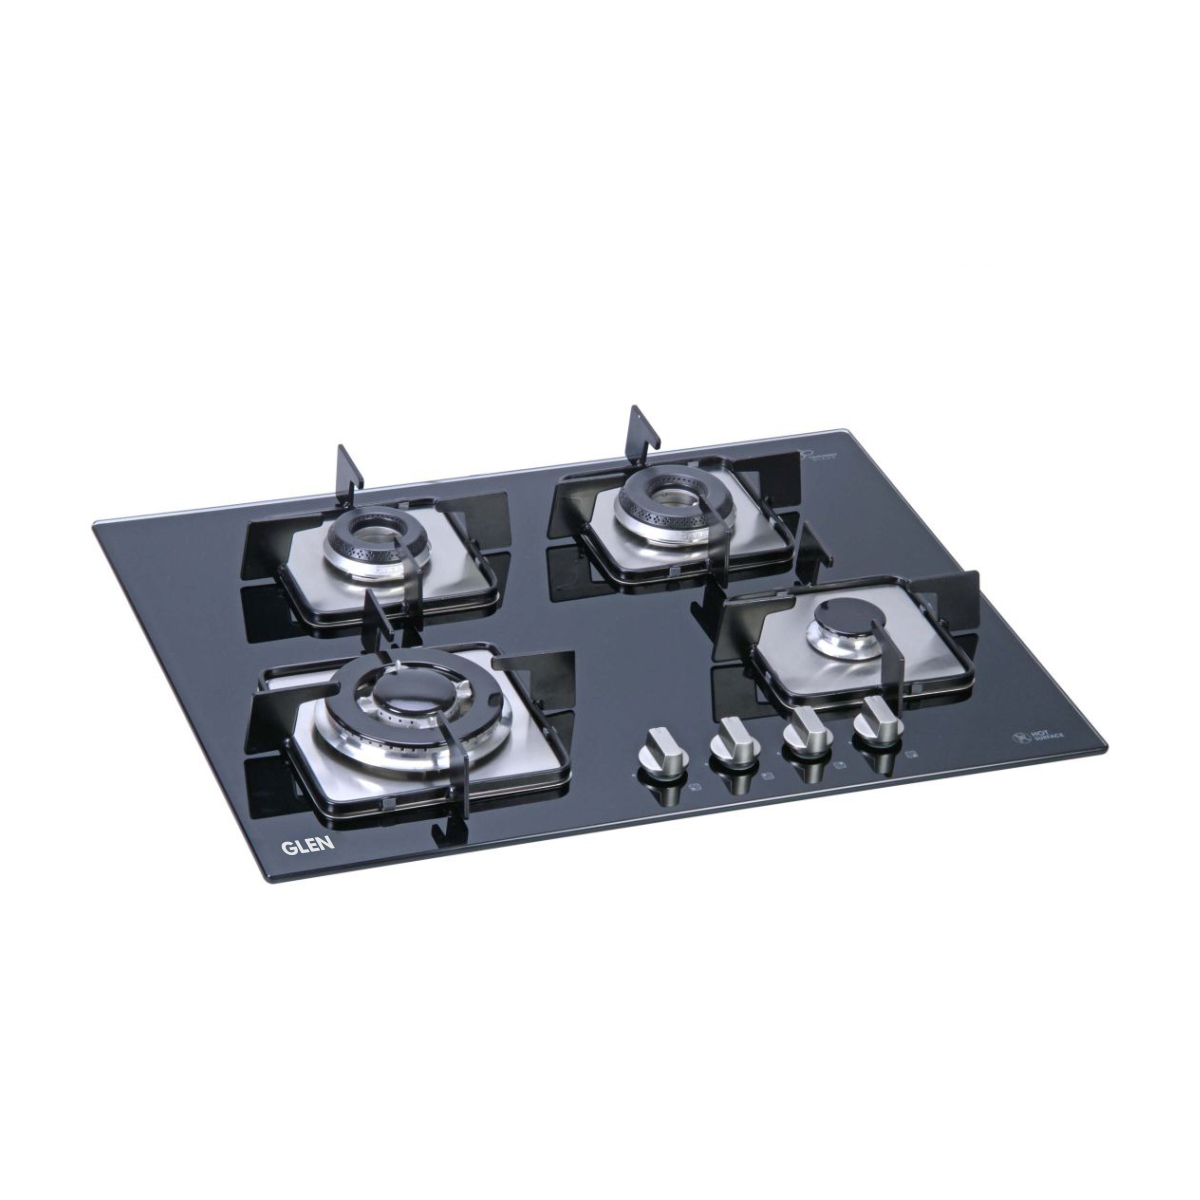 Glen 4 burner Built In Hob 1064 by Glen